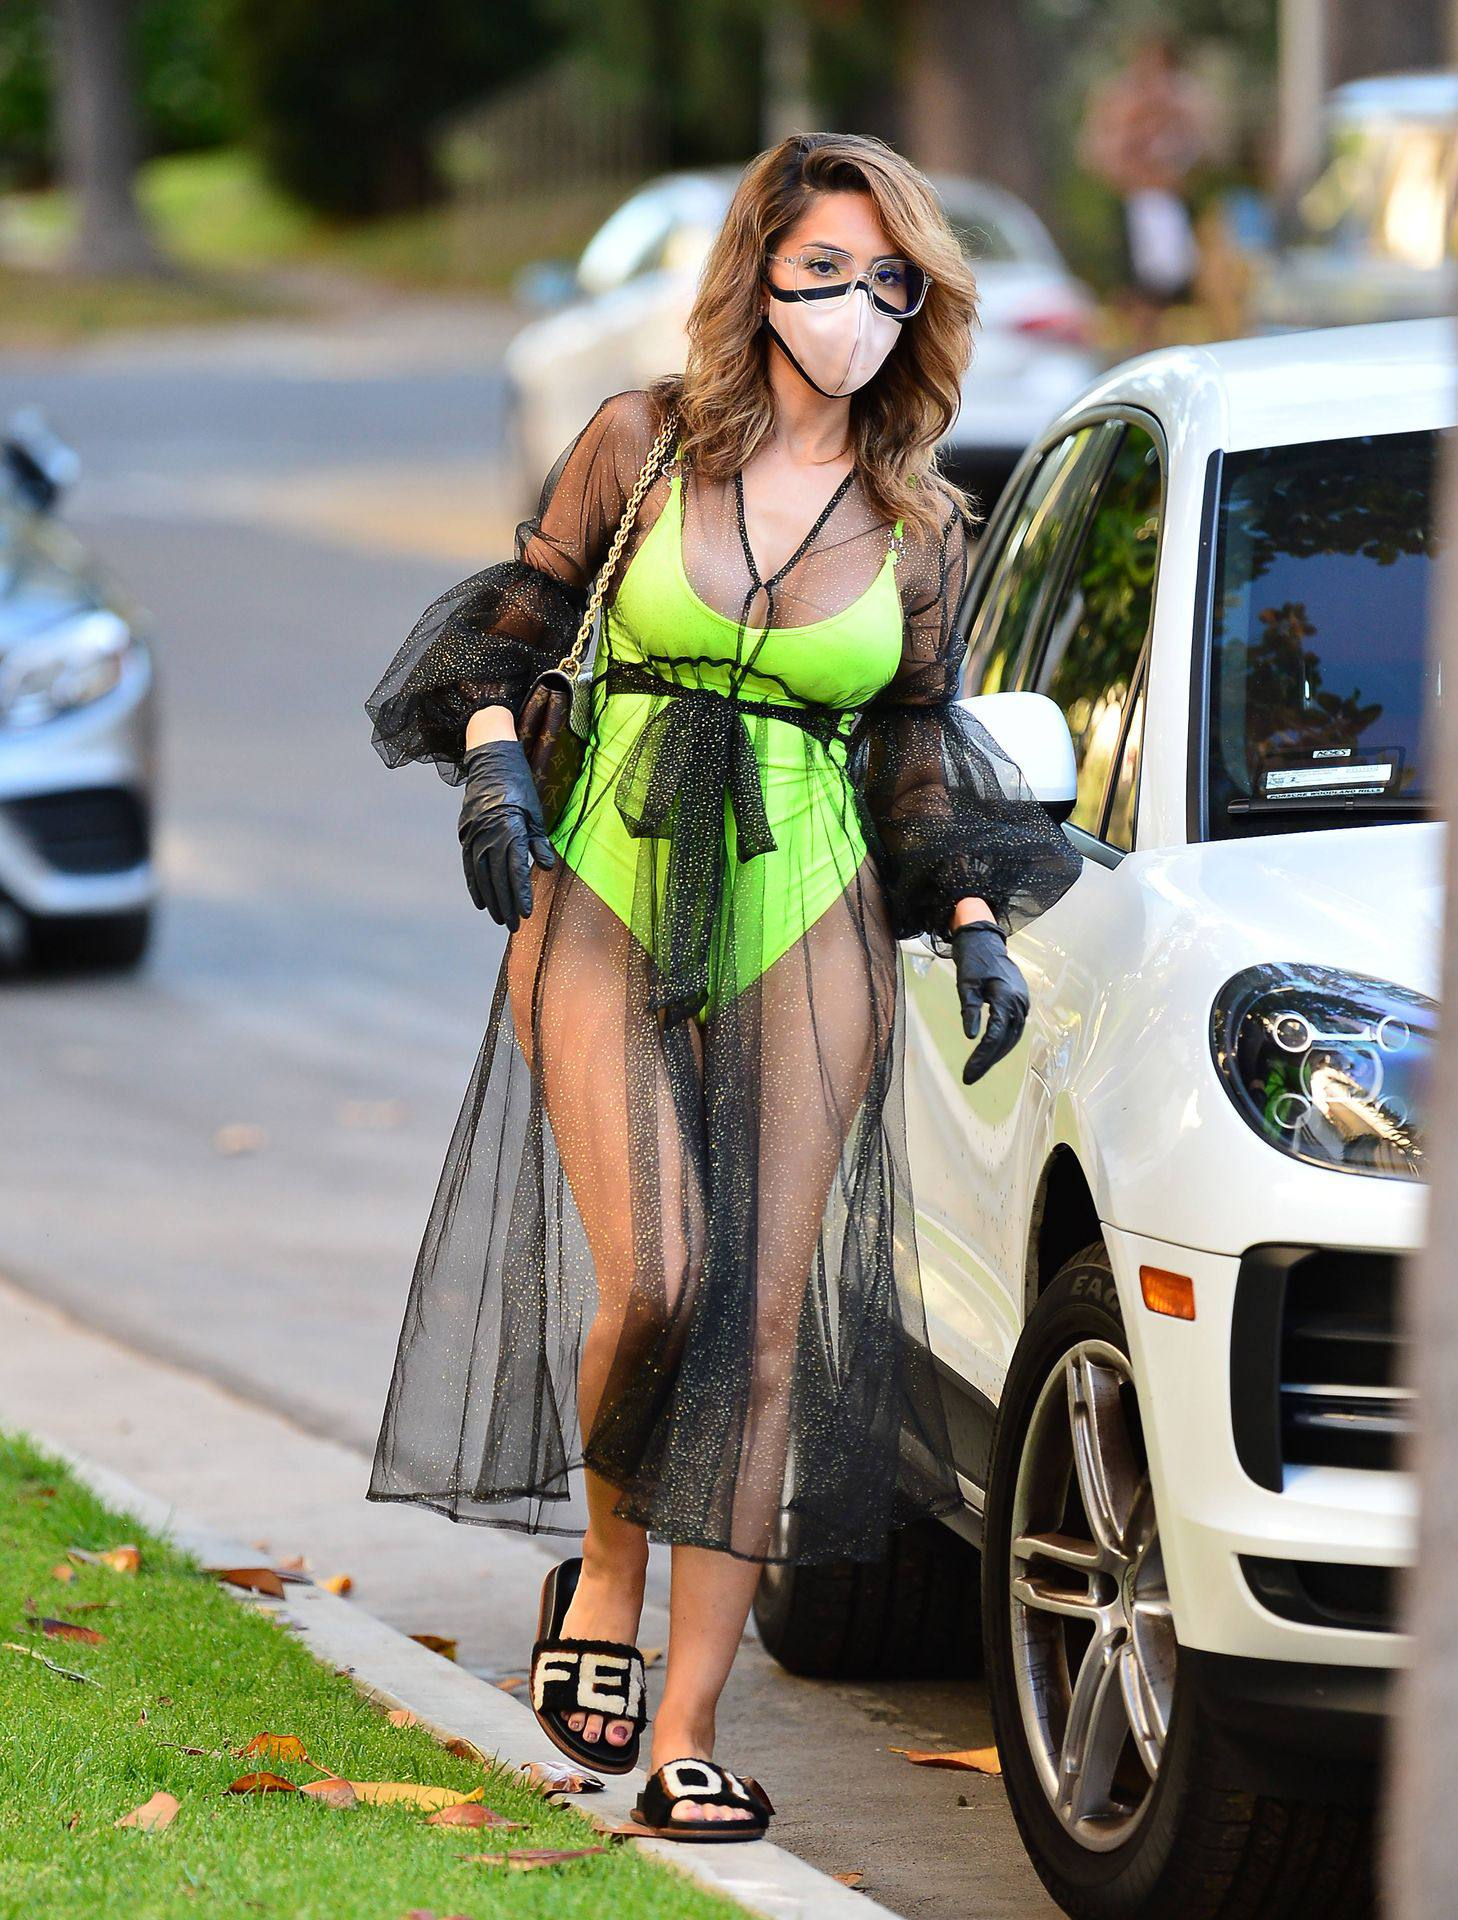 Farrah Abraham – Sexy Big Ass In Neon Green Swimsuit Out In Los Angeles 0015